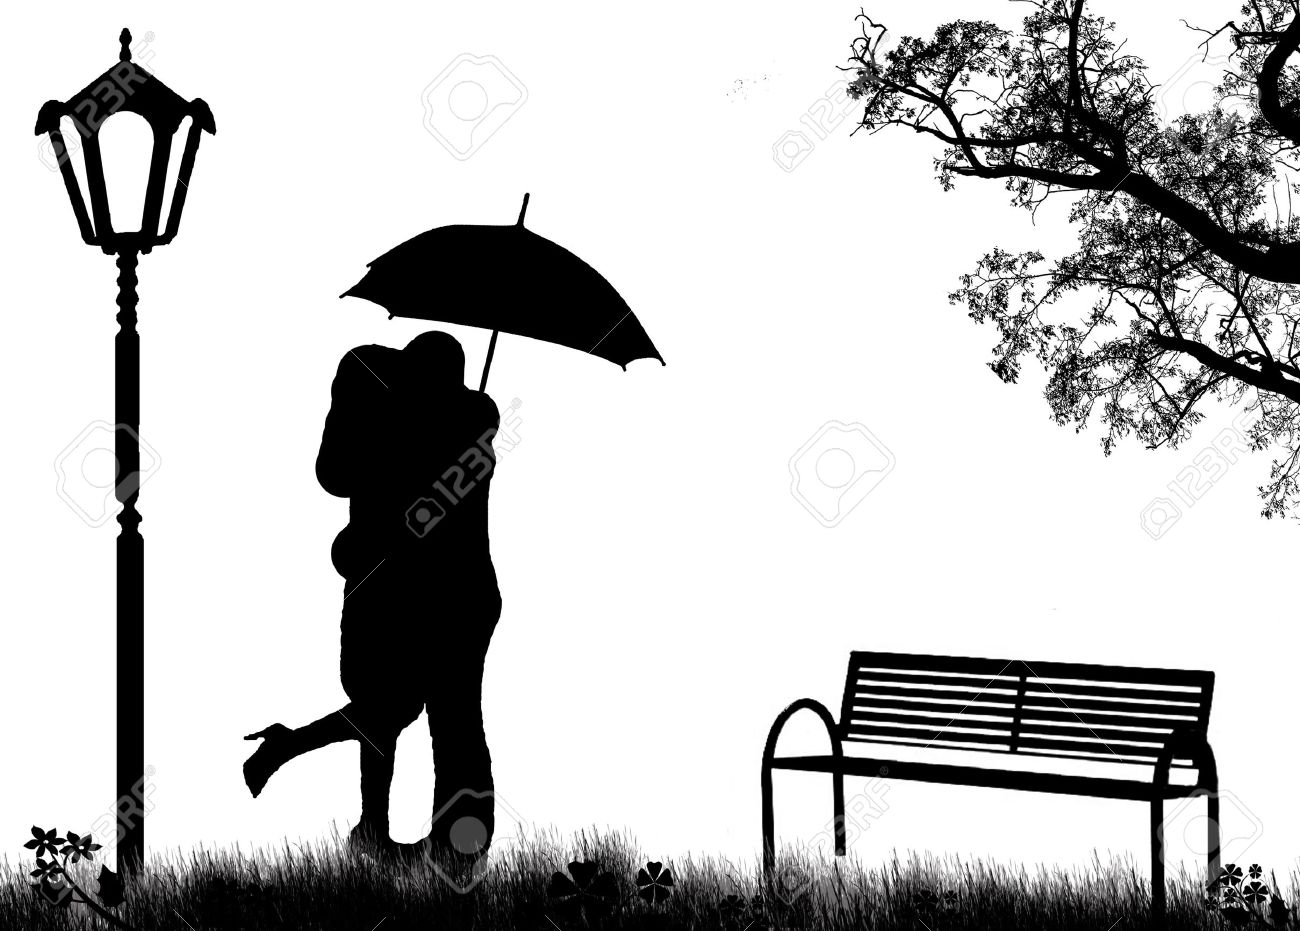 Embraced lovers in a park, on black and white illustration Stock Vector - 11536114